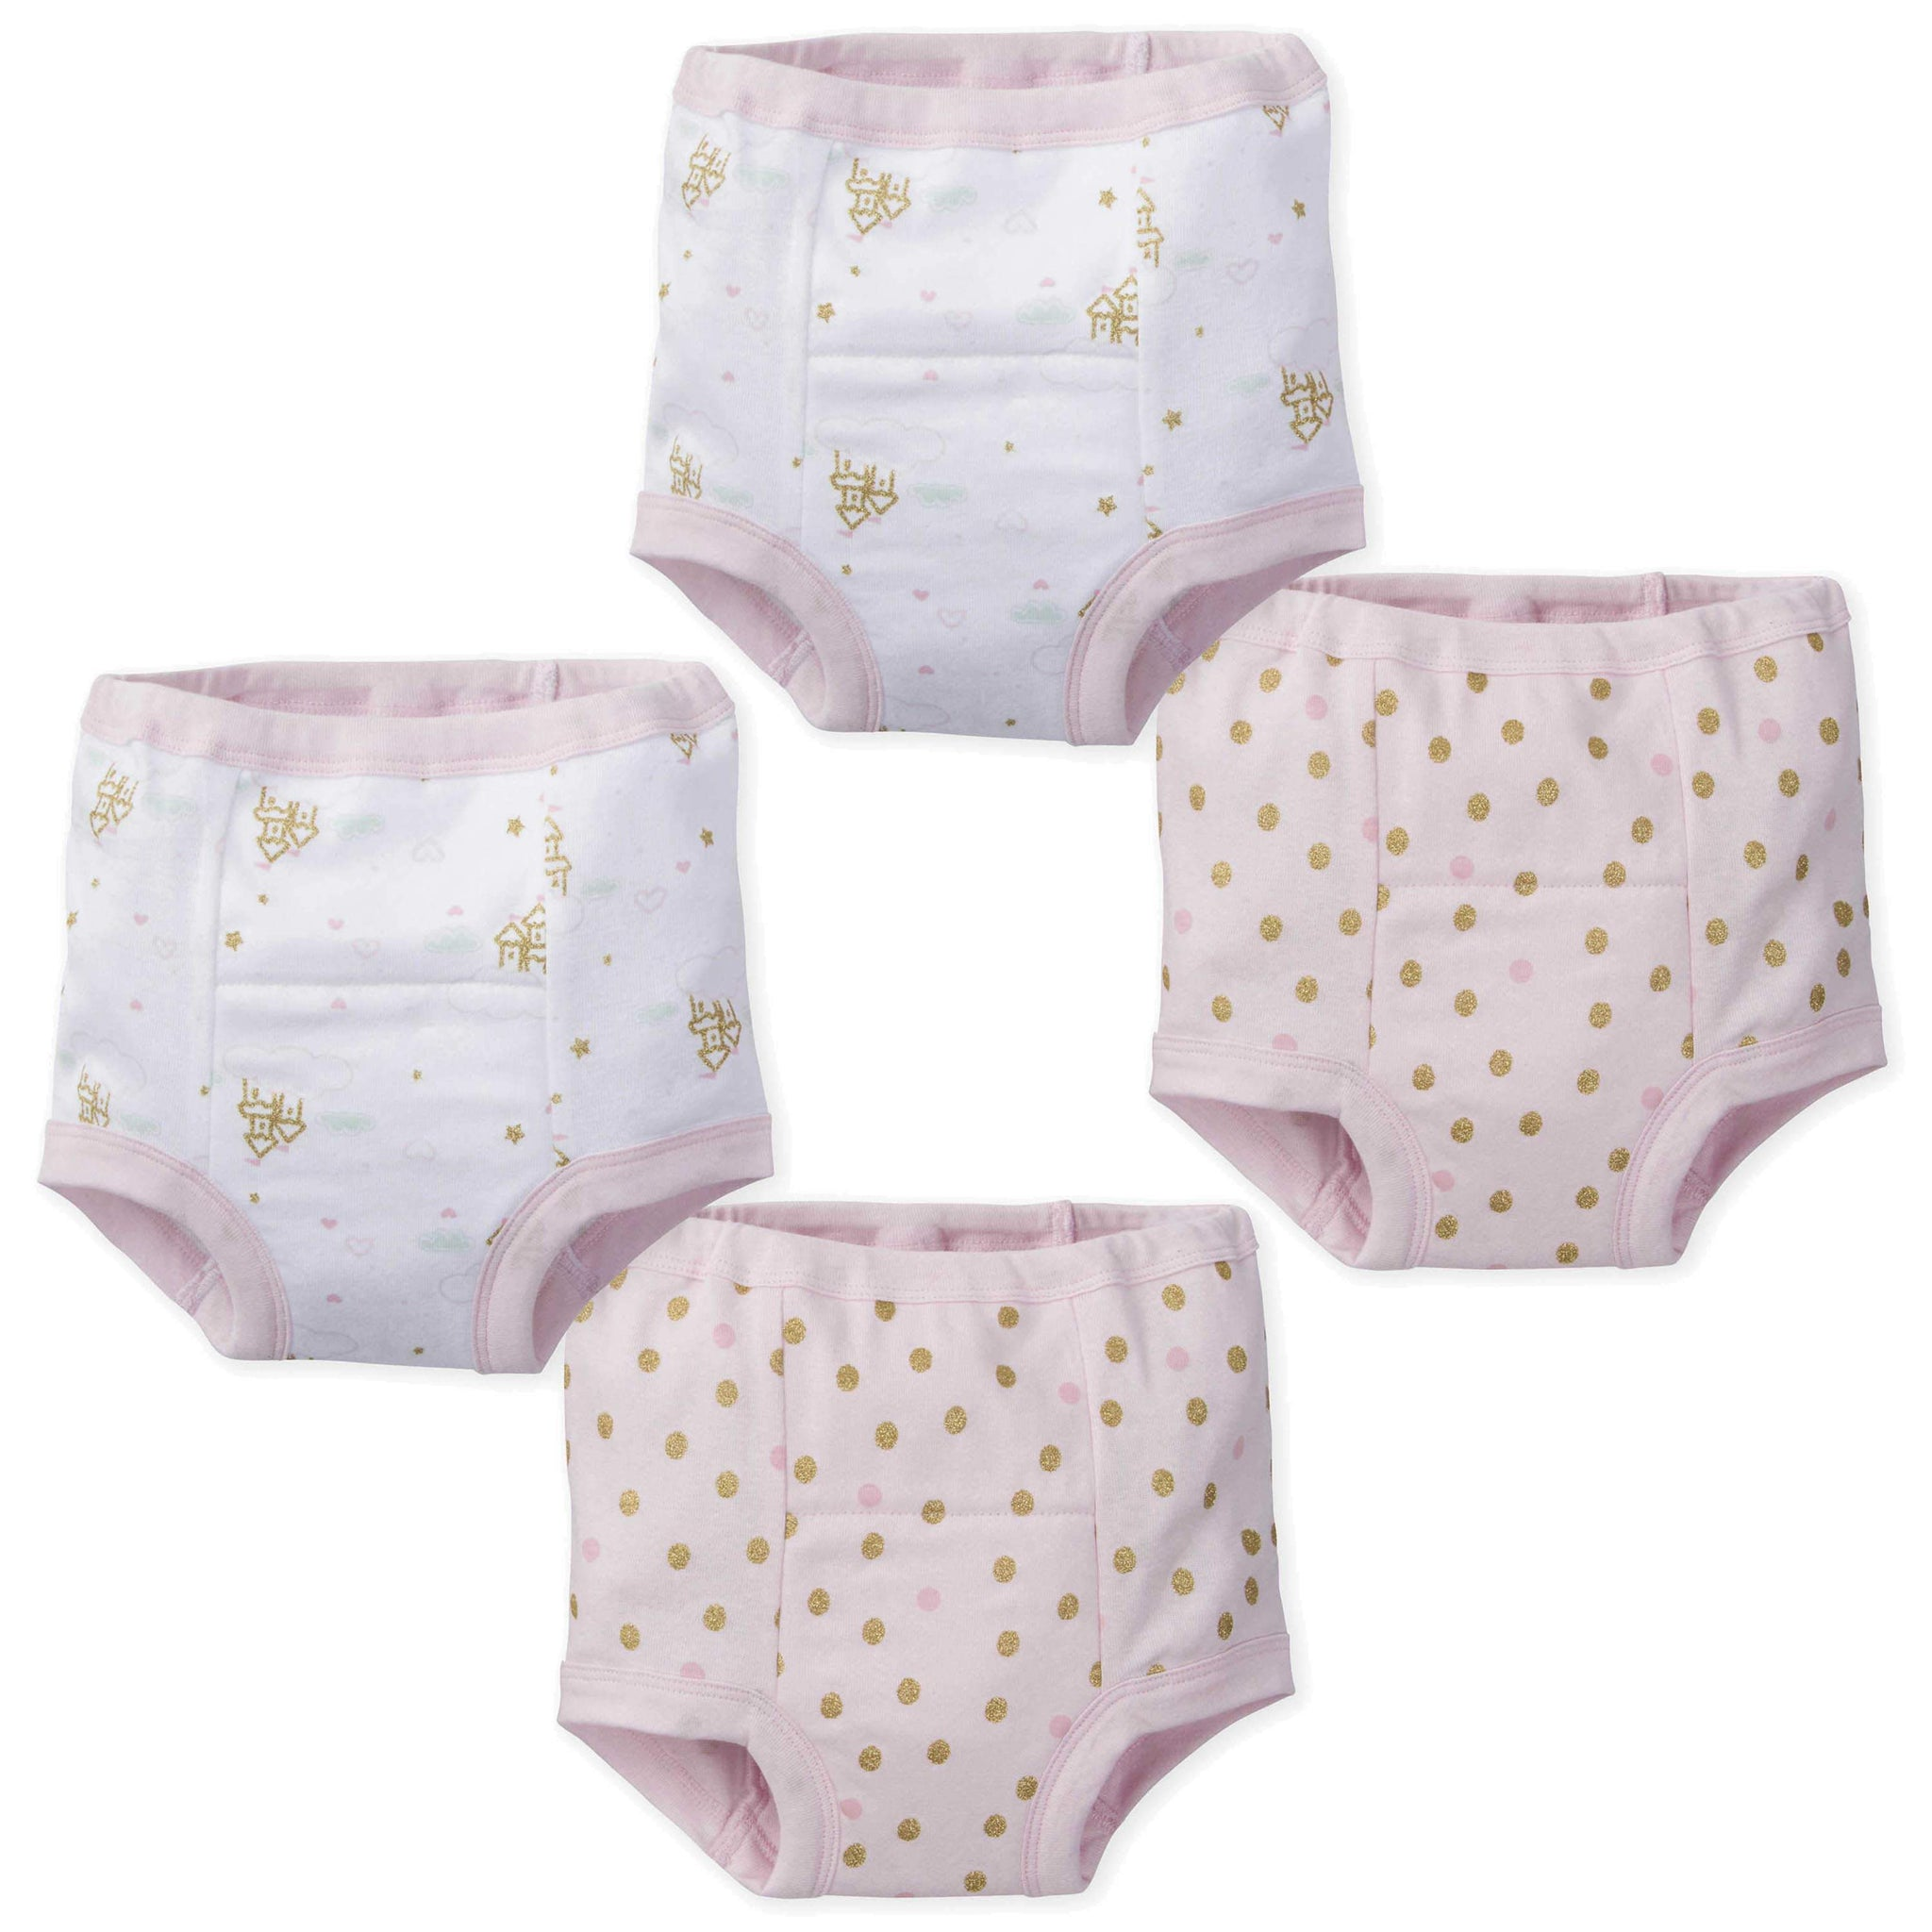 4-Pack Girls Castle Training Pants-Gerber Childrenswear Wholesale